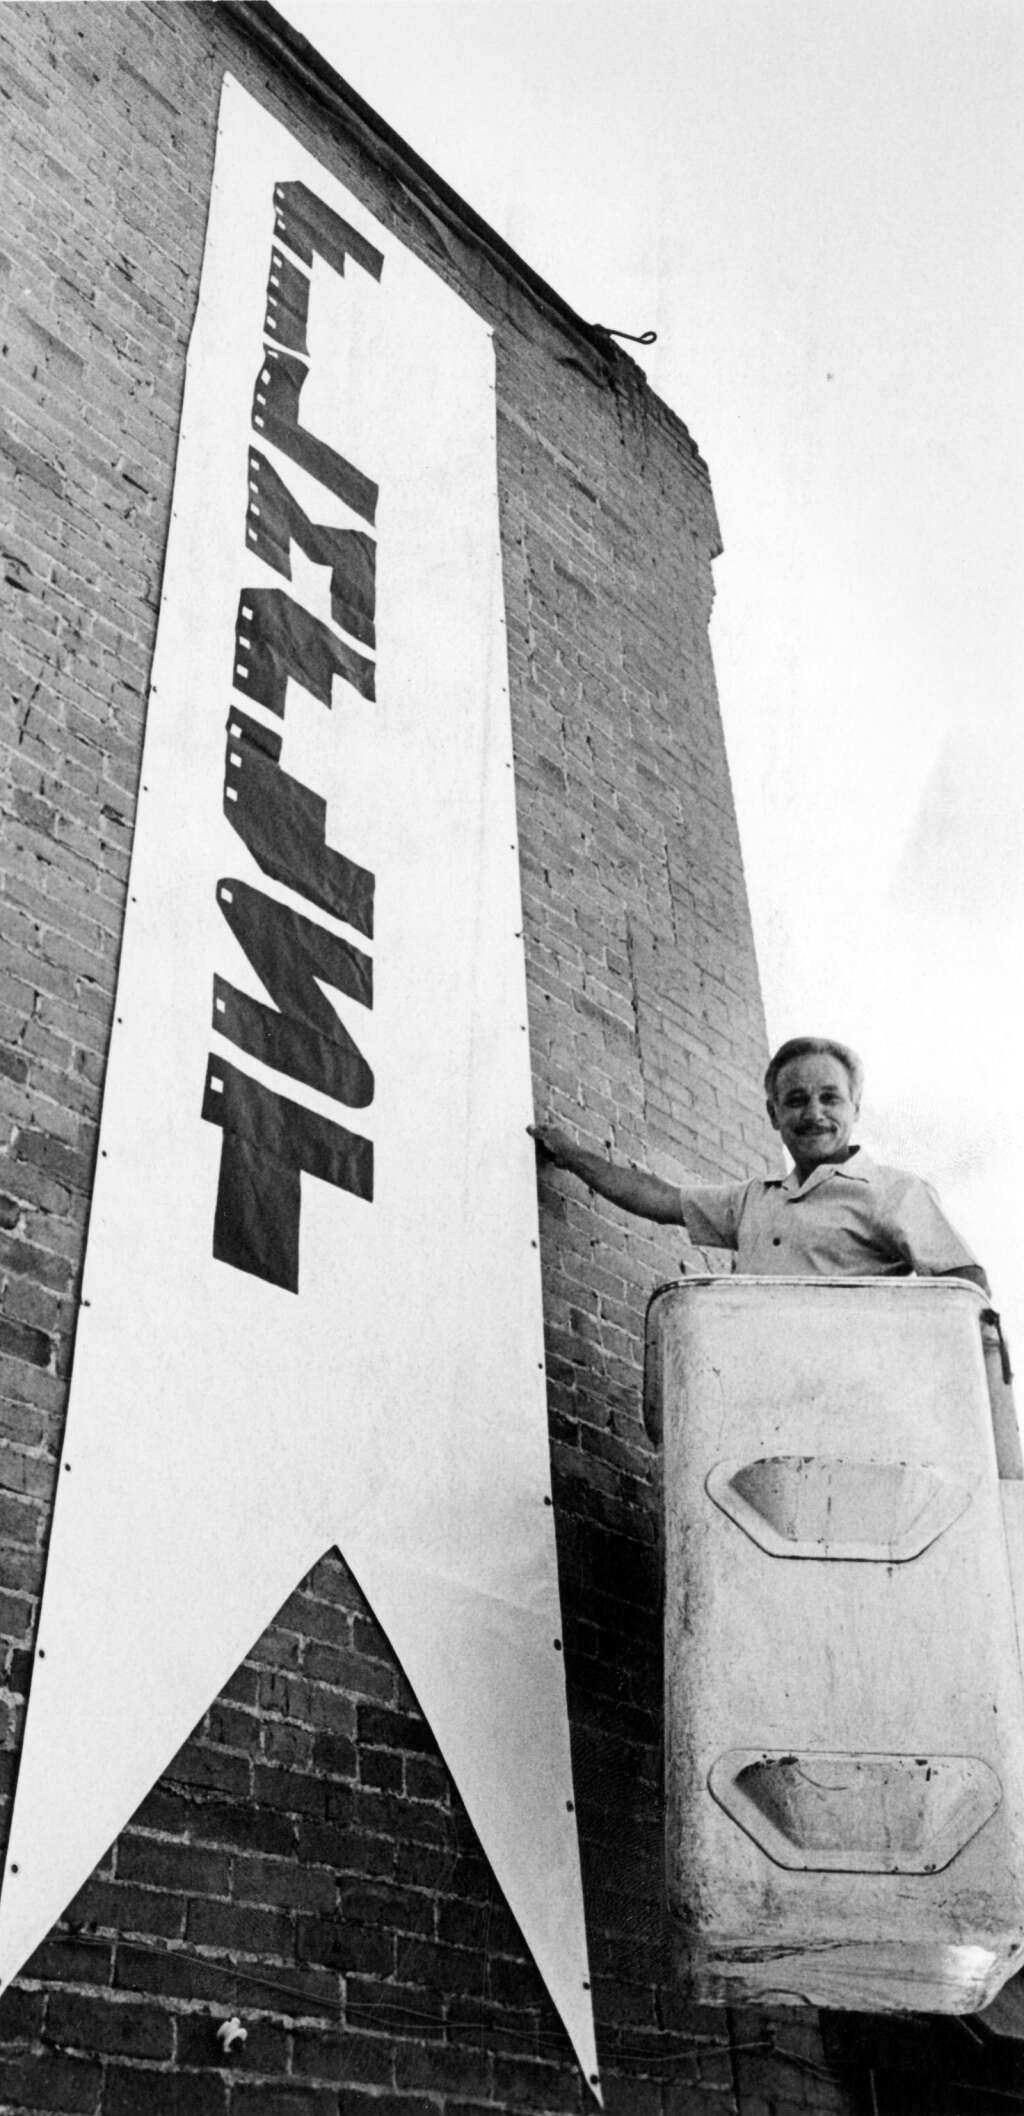 One b/w photograph of Dominic Linza, owner/manager of the Isis Theater, on a ladder putting out the banner for the Filmfest.  This image is in the Aspen Times on October 2, 1980, p. 15-B. (Aspen Historical Society, Aspen Times Collection)